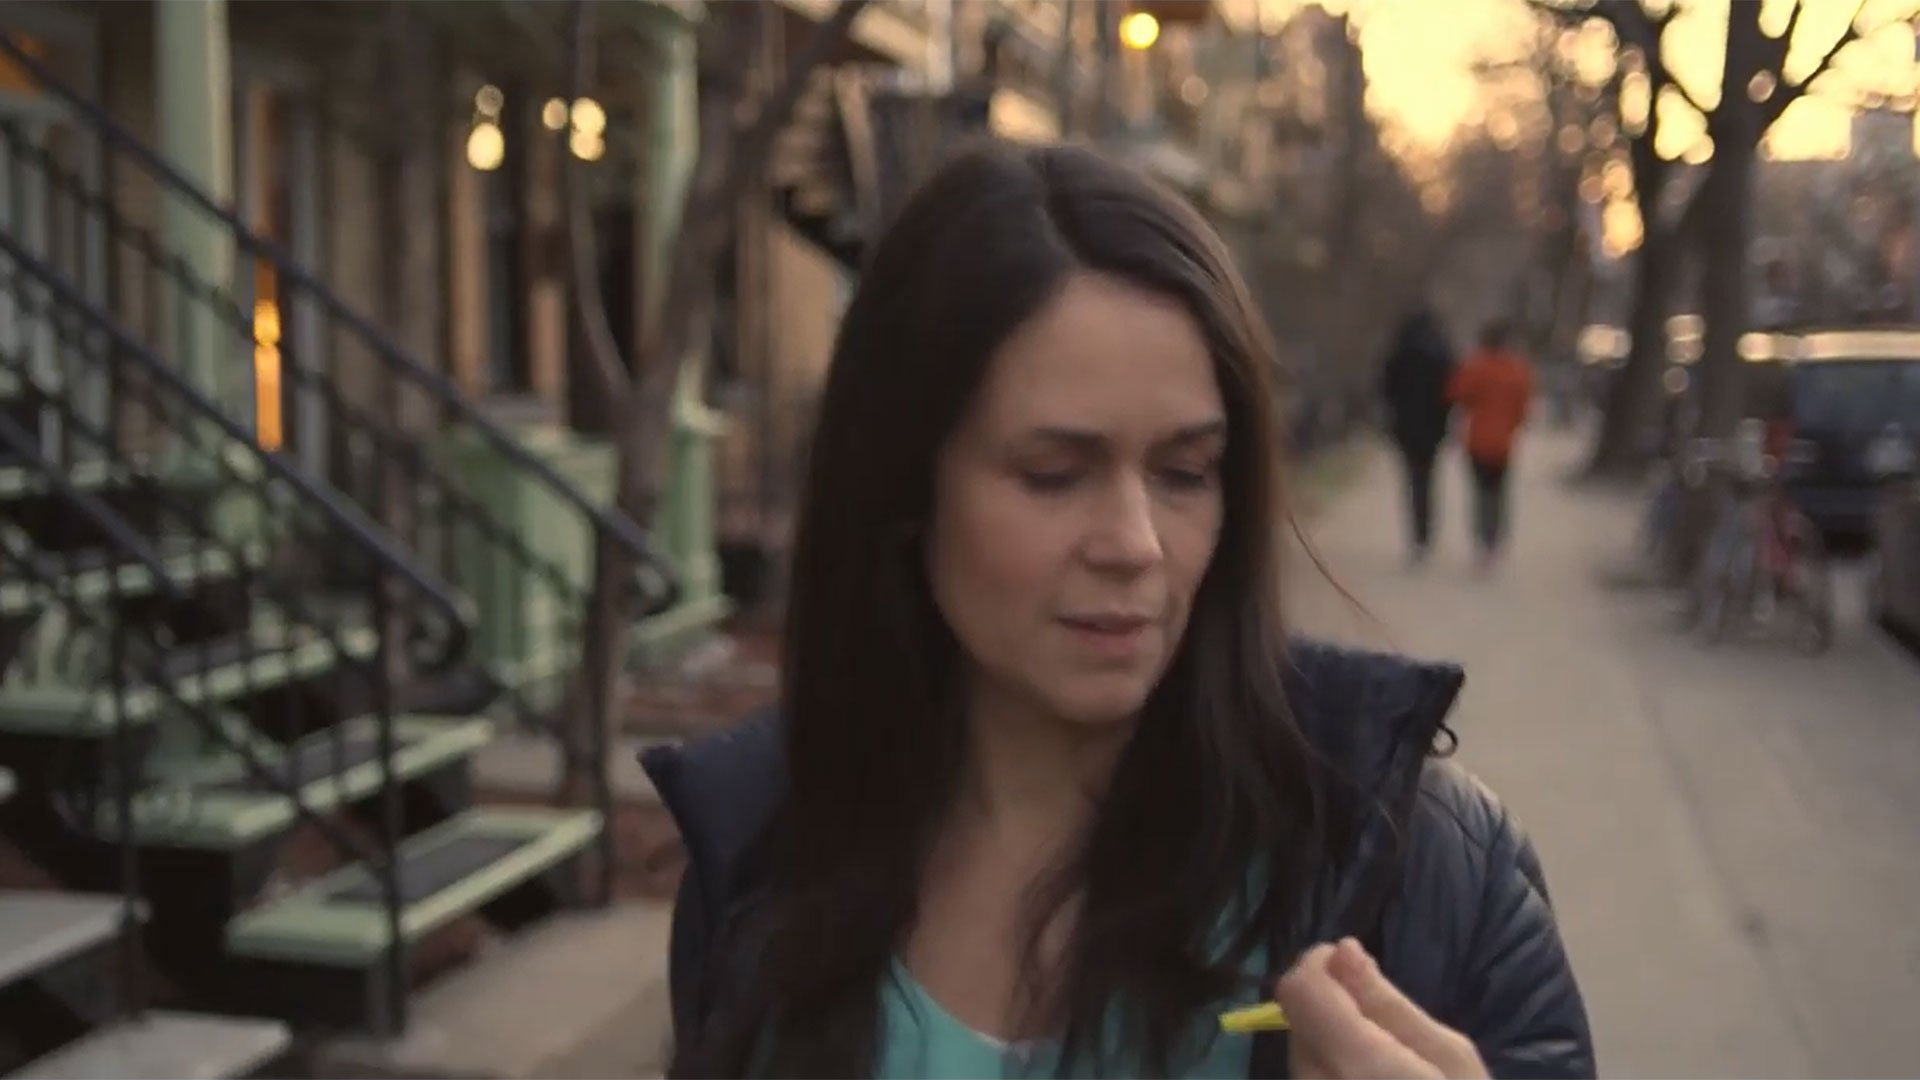 40 year old woman looking at key in the street